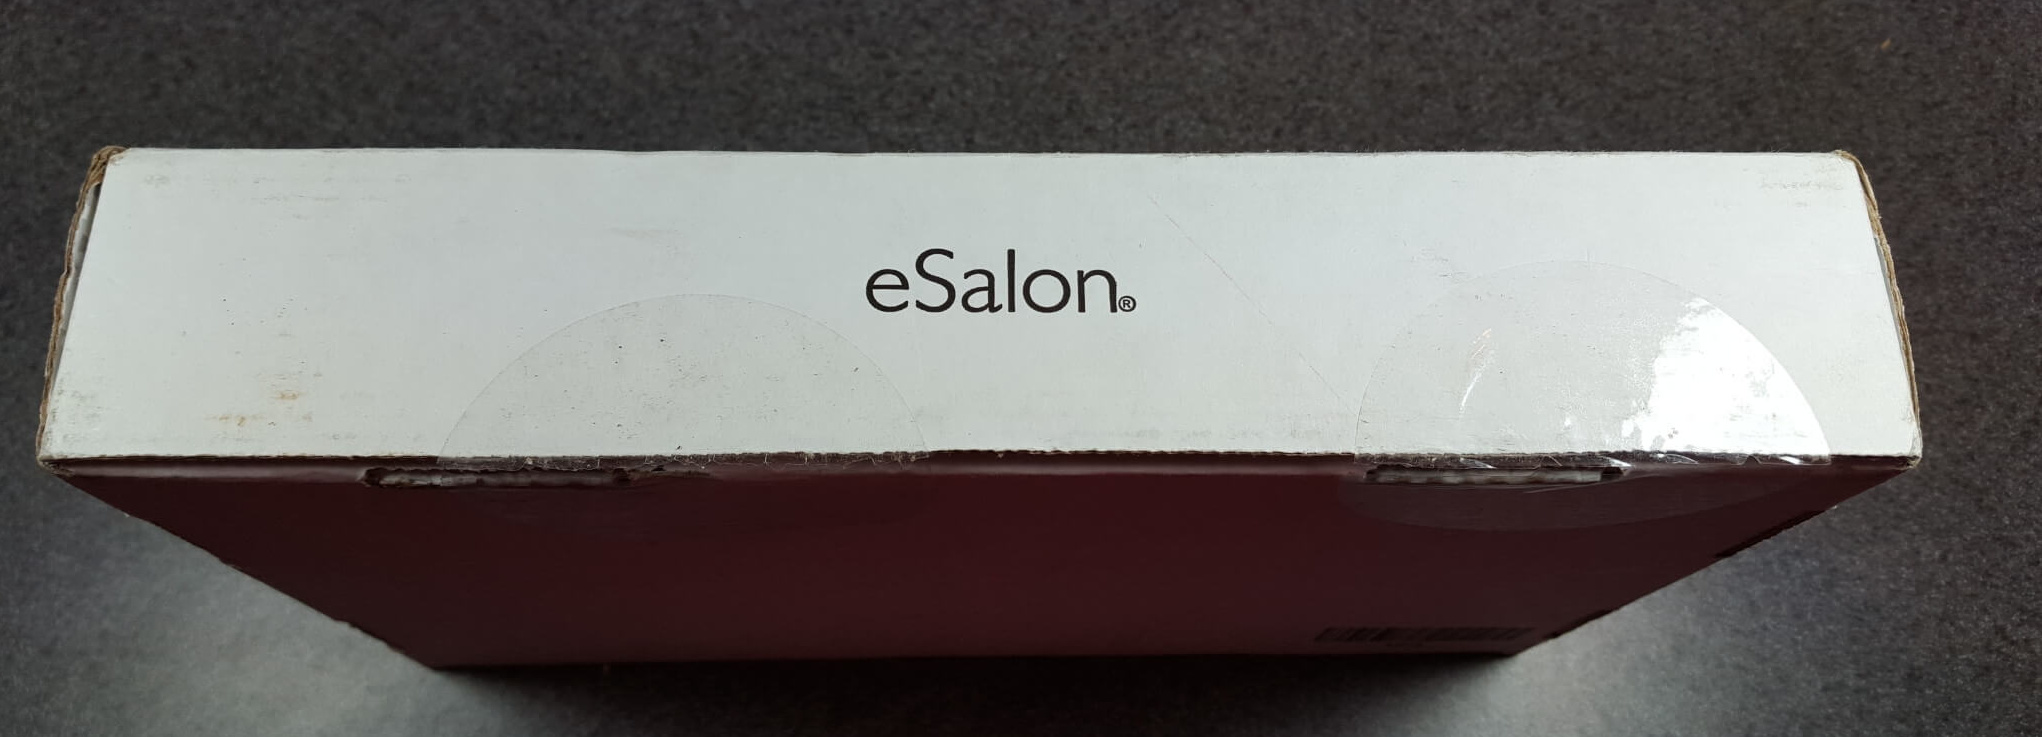 eSalon Custom Hair Color Subscription Review – First Box $10!